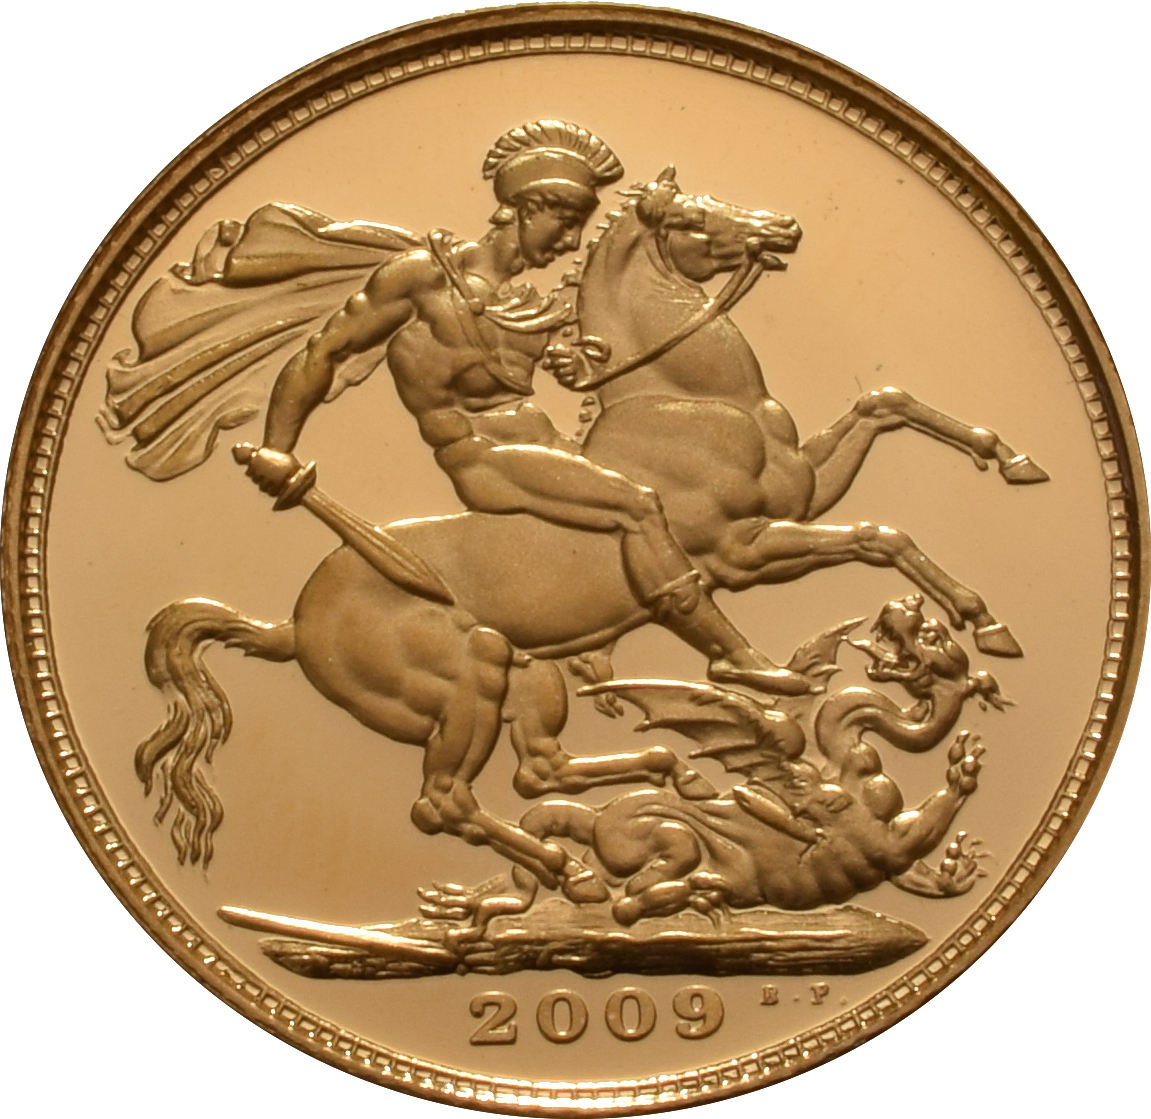 2009 Gold Proof Sovereign Three Coin Set 163 1 270